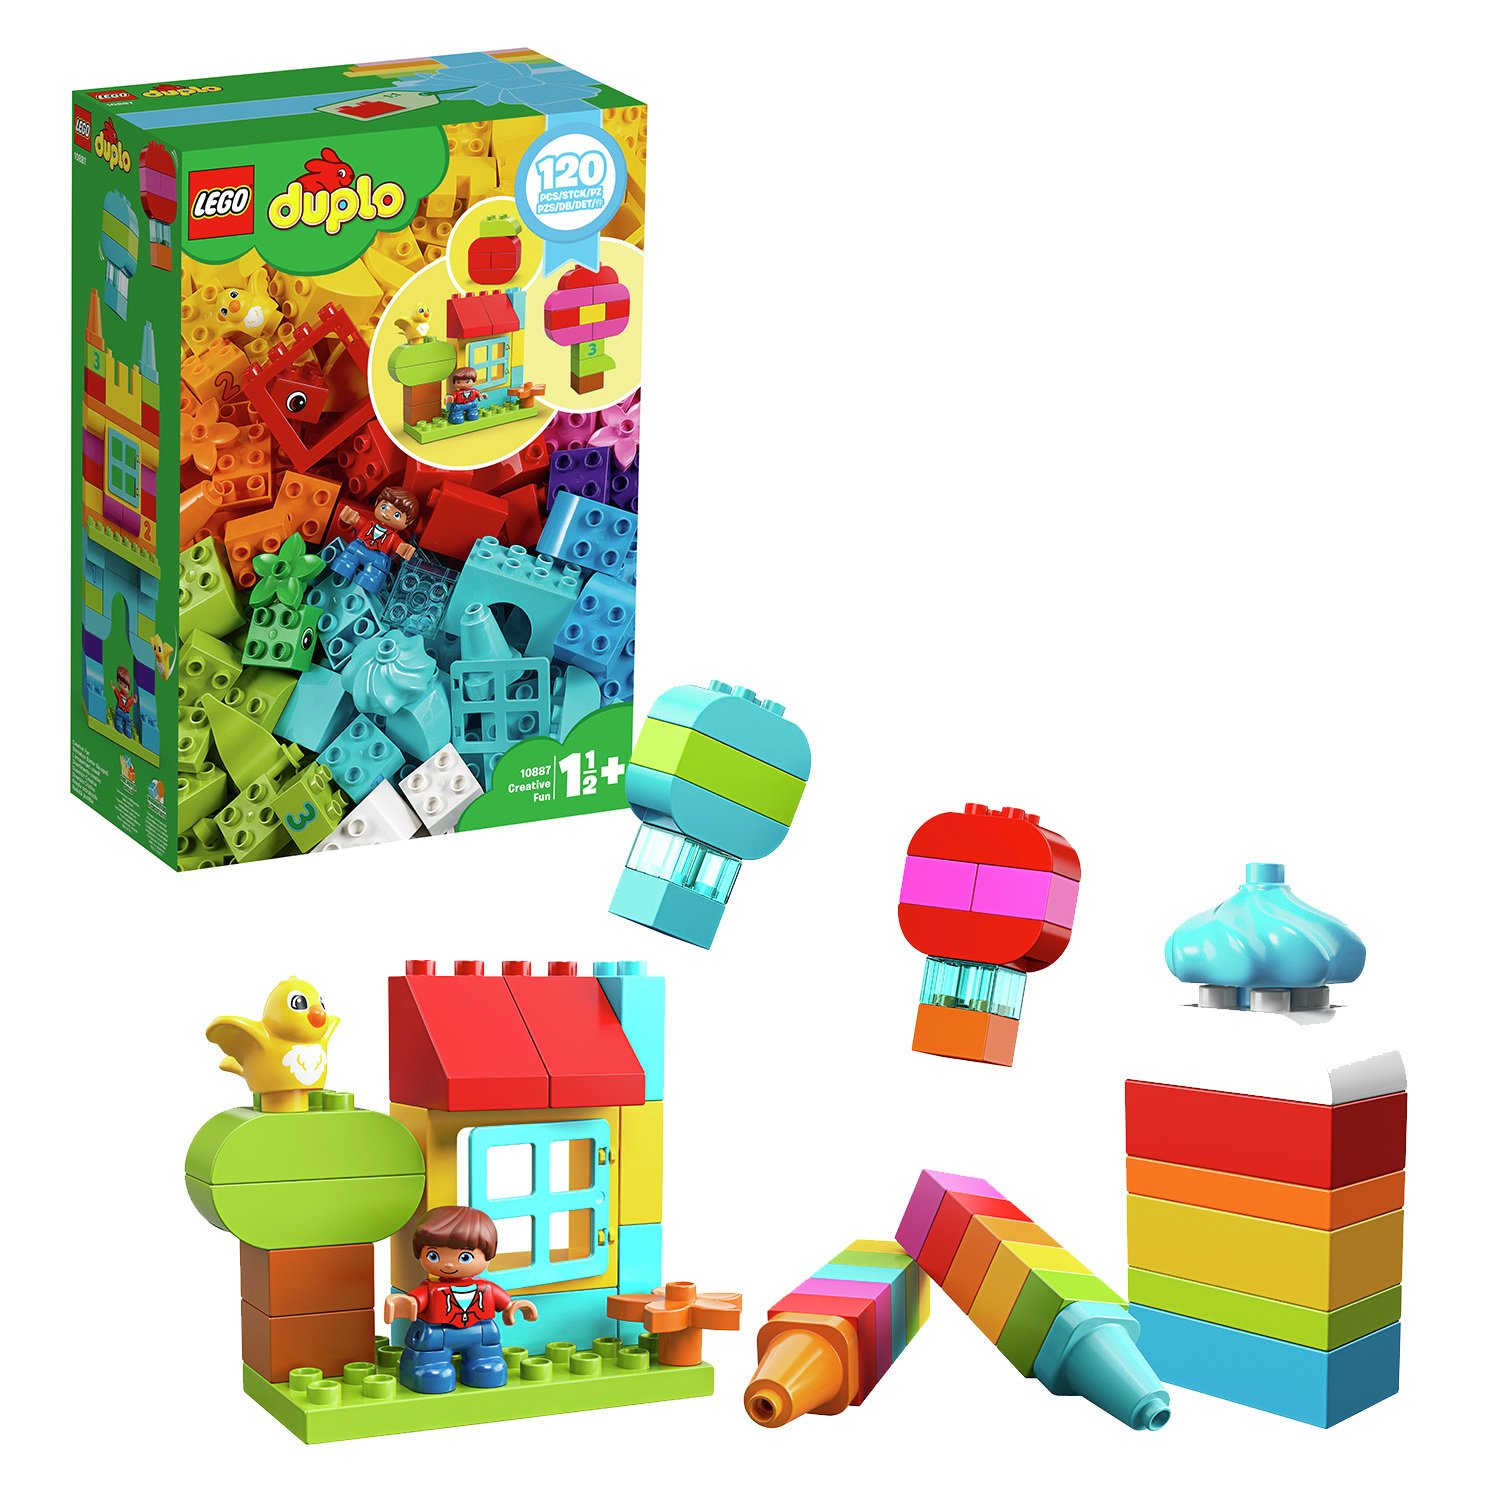 LEGO Duplo Creative Fun Building Bricks - 10887